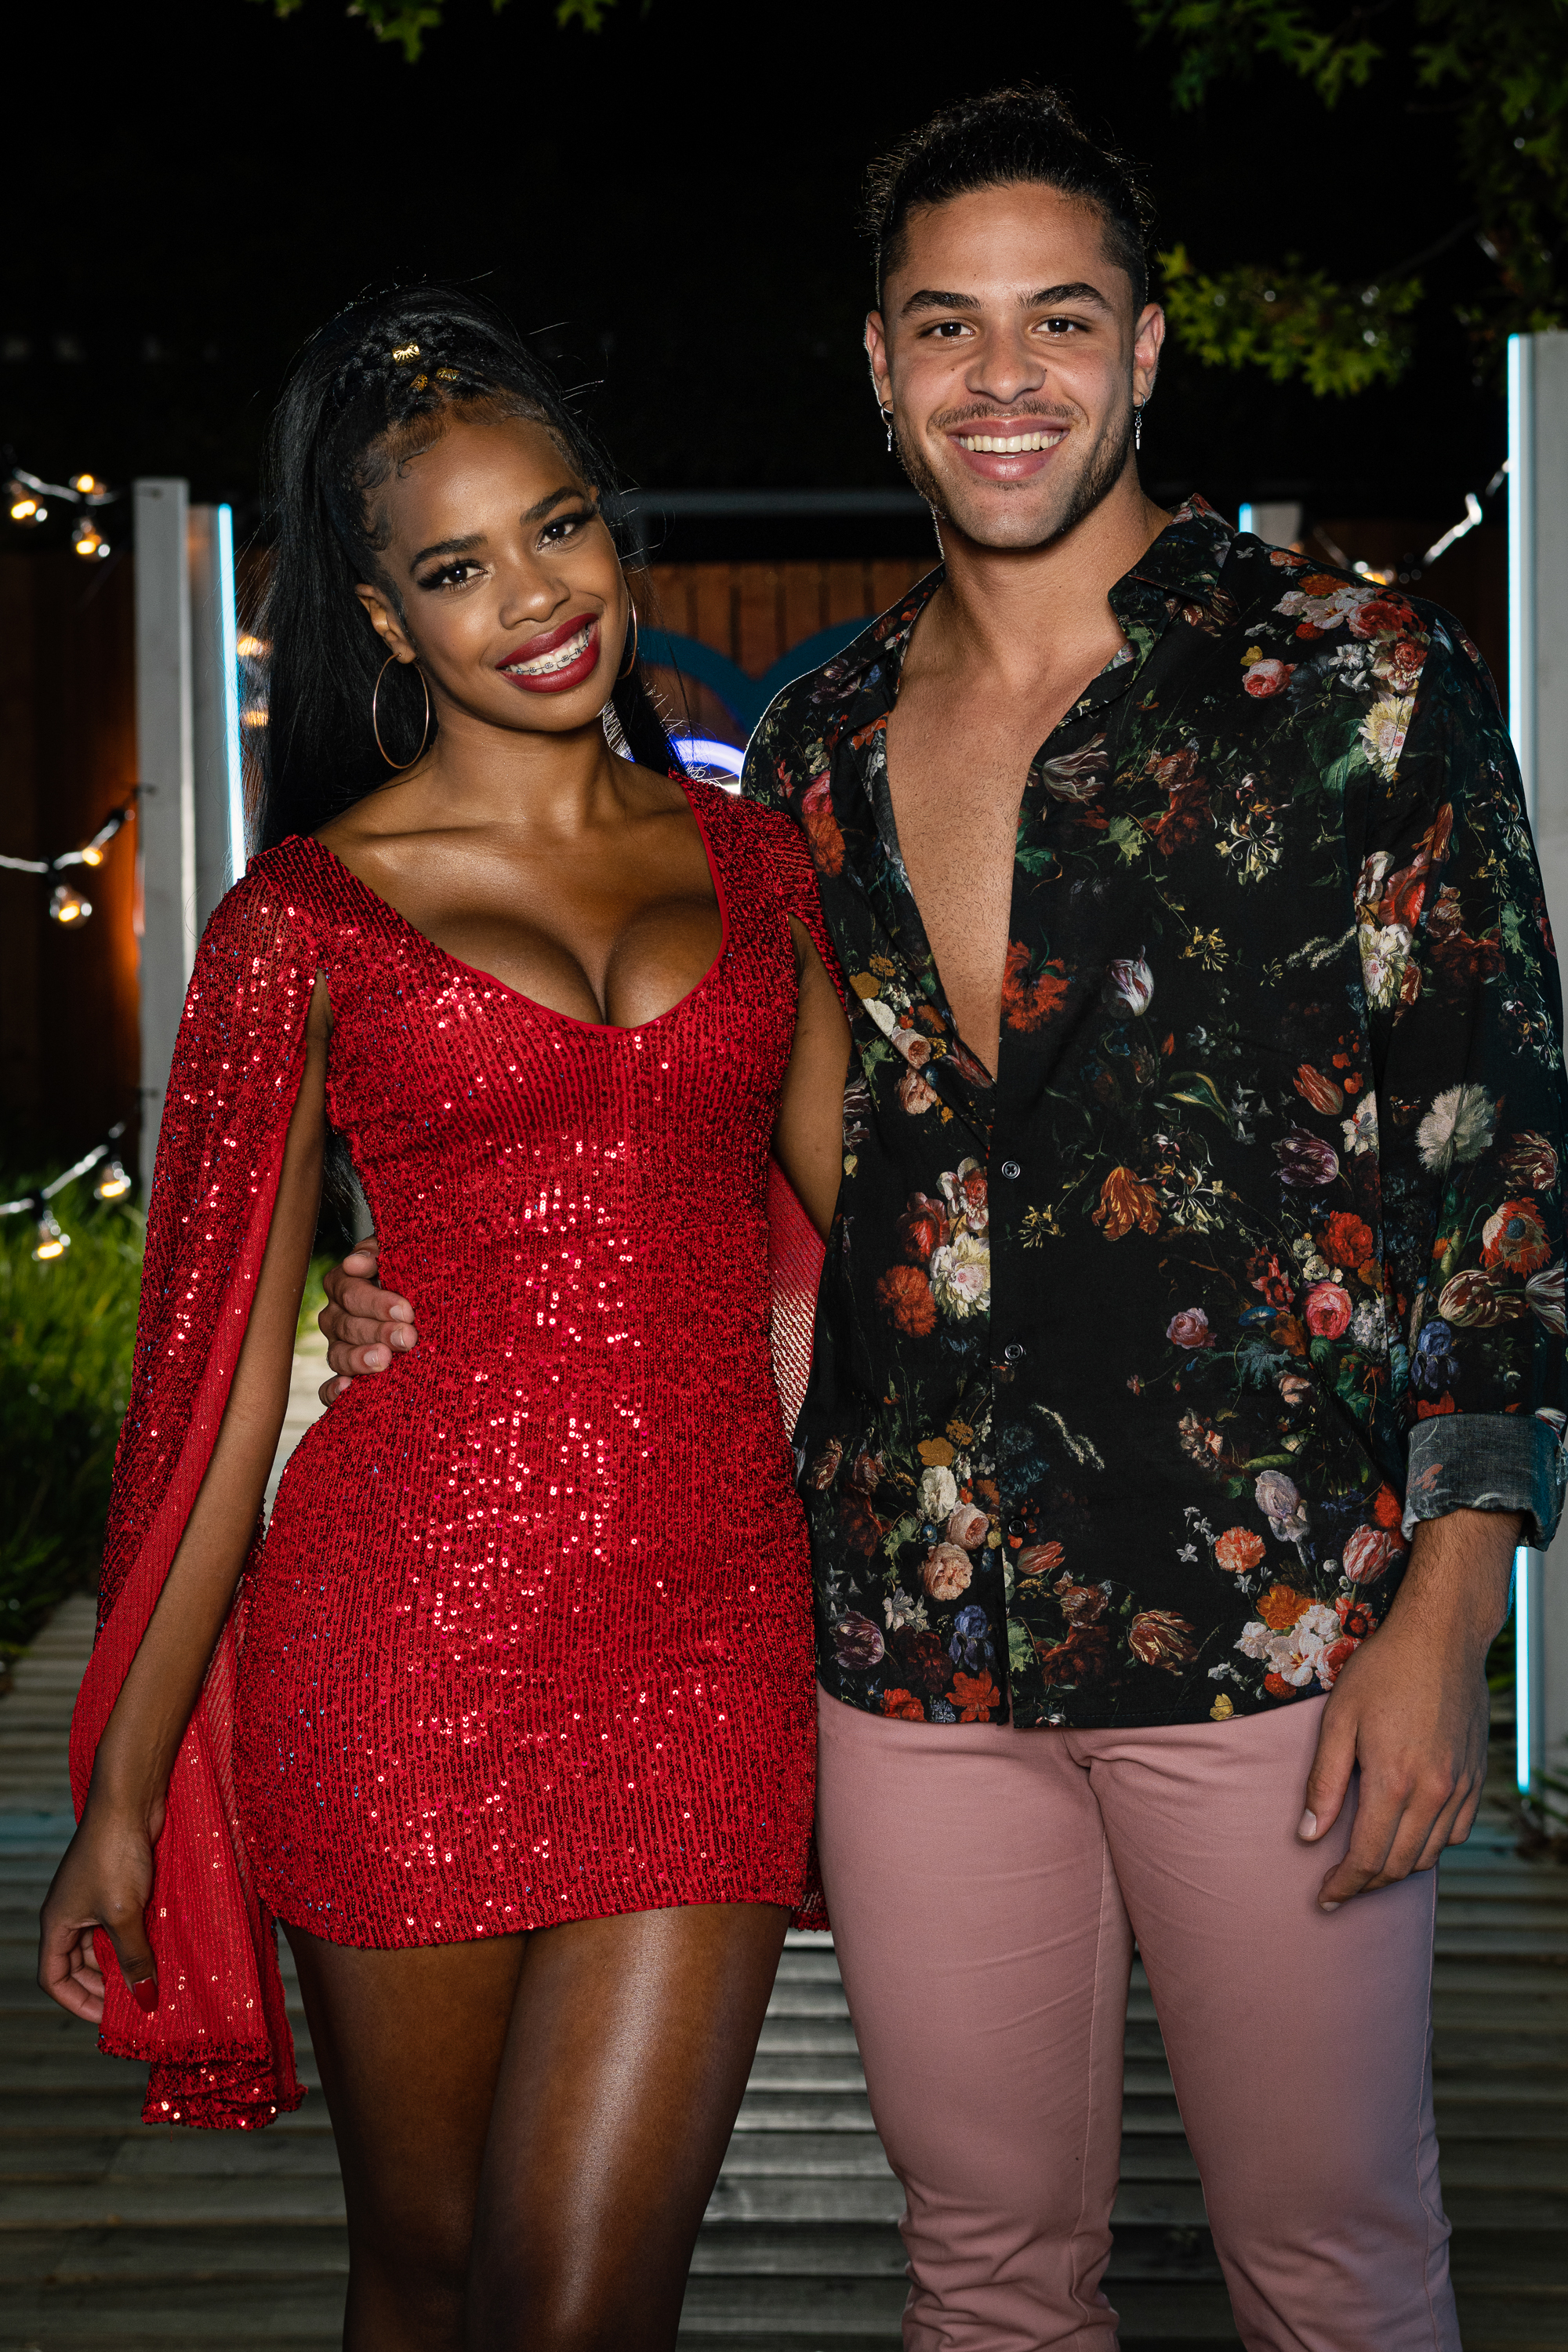 """Electronic Media Network (Pty) (Ltd)1985/002853/06Love Island SA on M-Net 101Pictured: Finale - Tania & RossThis photograph is copyrighted by M-Net and can only be used for editorial purposes in direct connection with the programme or event mentioned above (""""Permitted Use""""). This photograph will not be used in any other way other than the Permitted Use. Without limitation to the generality of the foregoing, this photograph will not be used, framed or linked in such a way that the photograph appears as part of any unauthorised public domain. This photograph must not be syndicated by any other company, publication or website, or permanently archived without the express written permission by M-Net Publicity."""